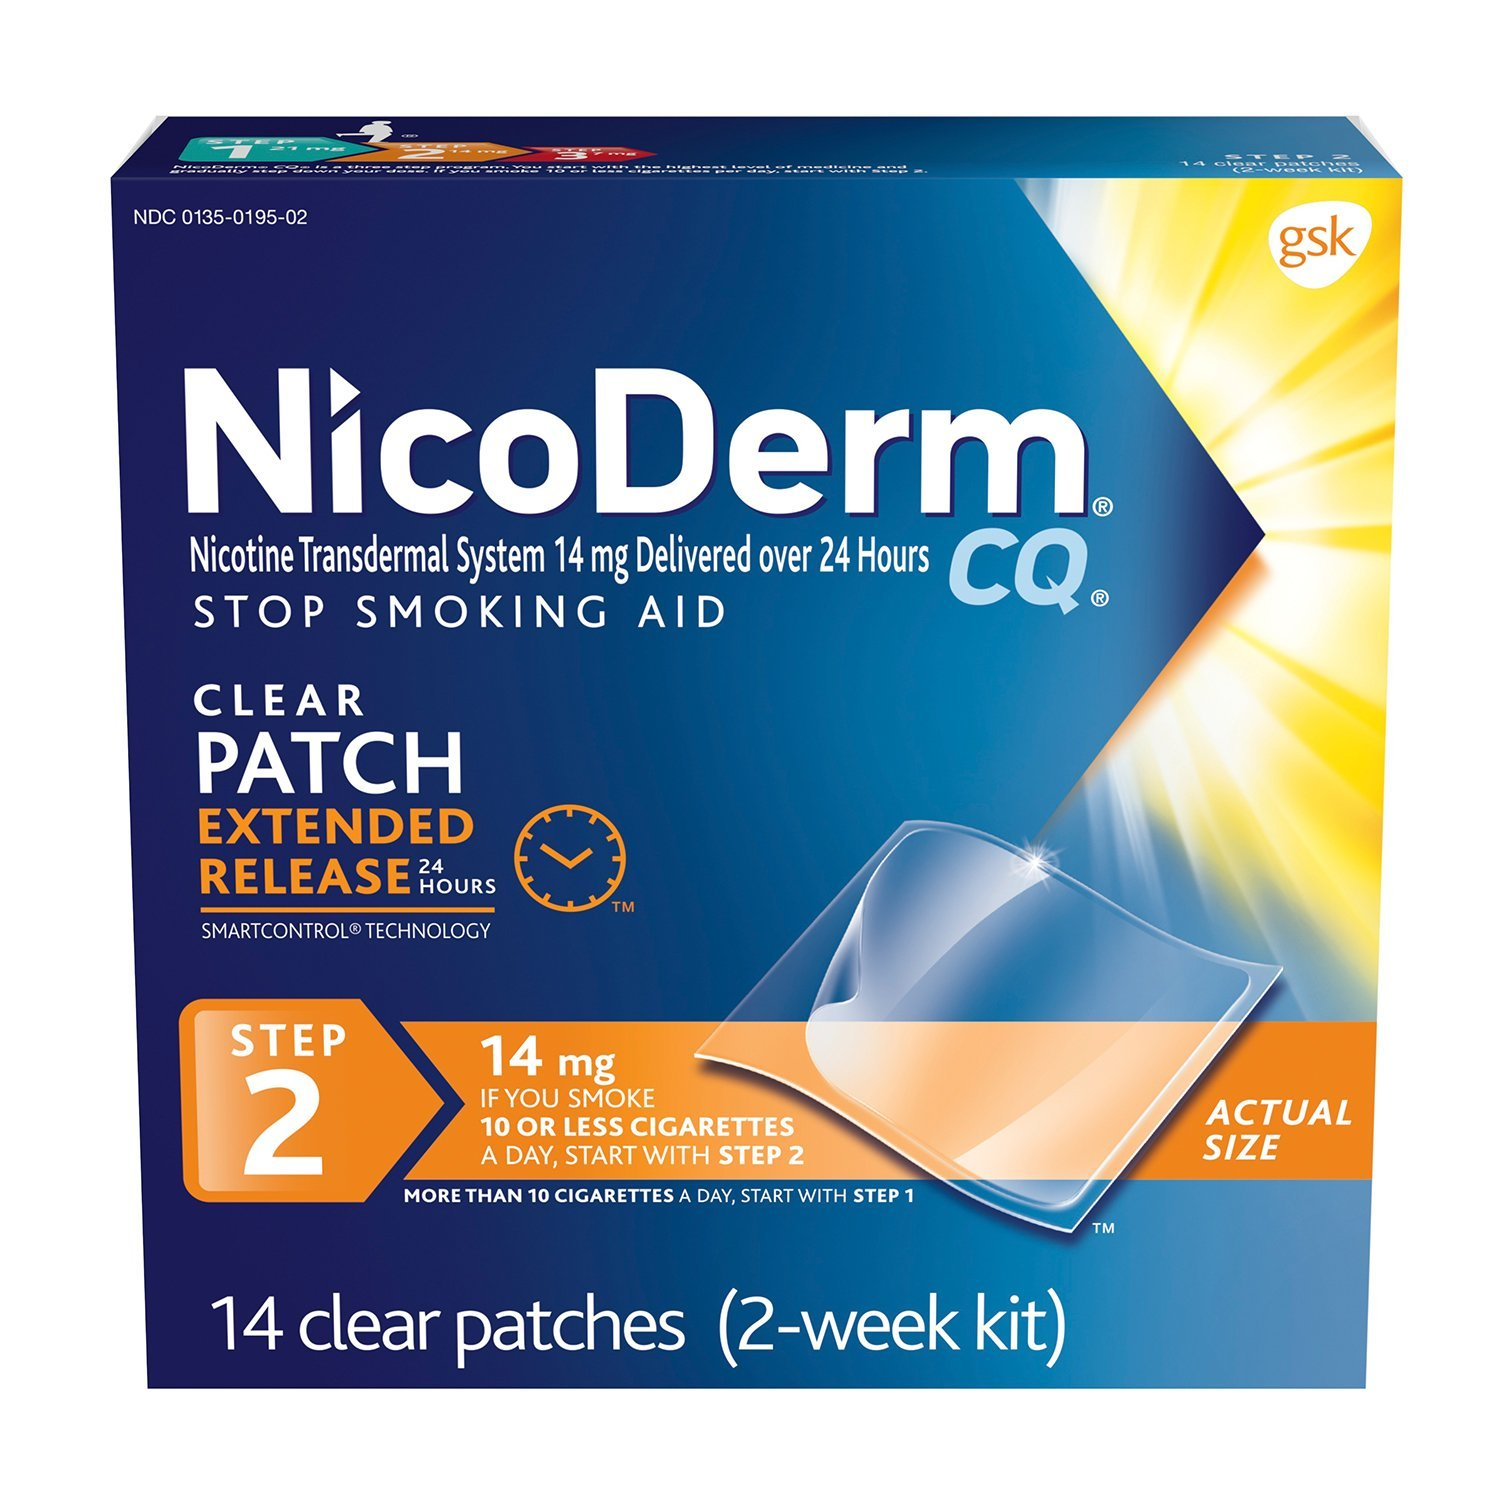 NicoDerm CQ Stop Smoking Aid 14 milligram Clear Nicotine Patches for Quitting Smoking, Step 2, 14 Count